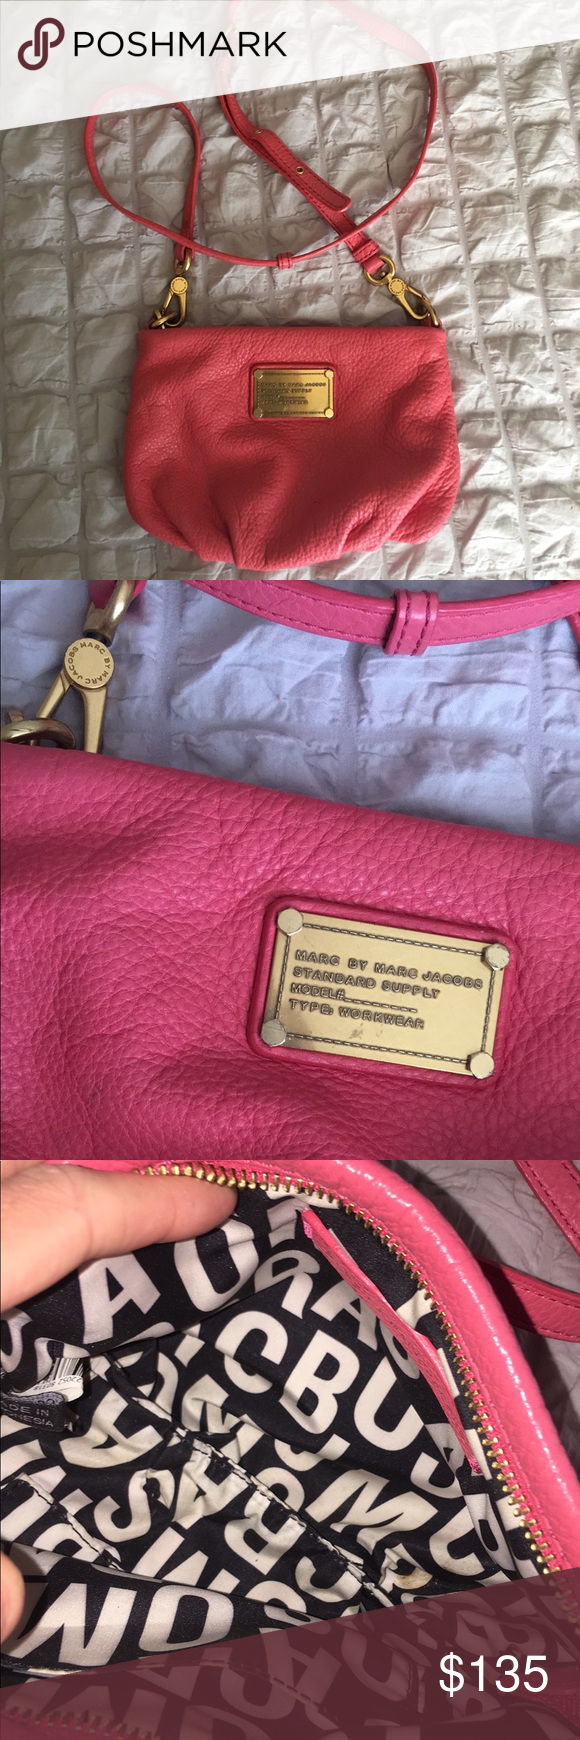 Marc Jacobs Classic Q Percy Pink Crossbody Bag